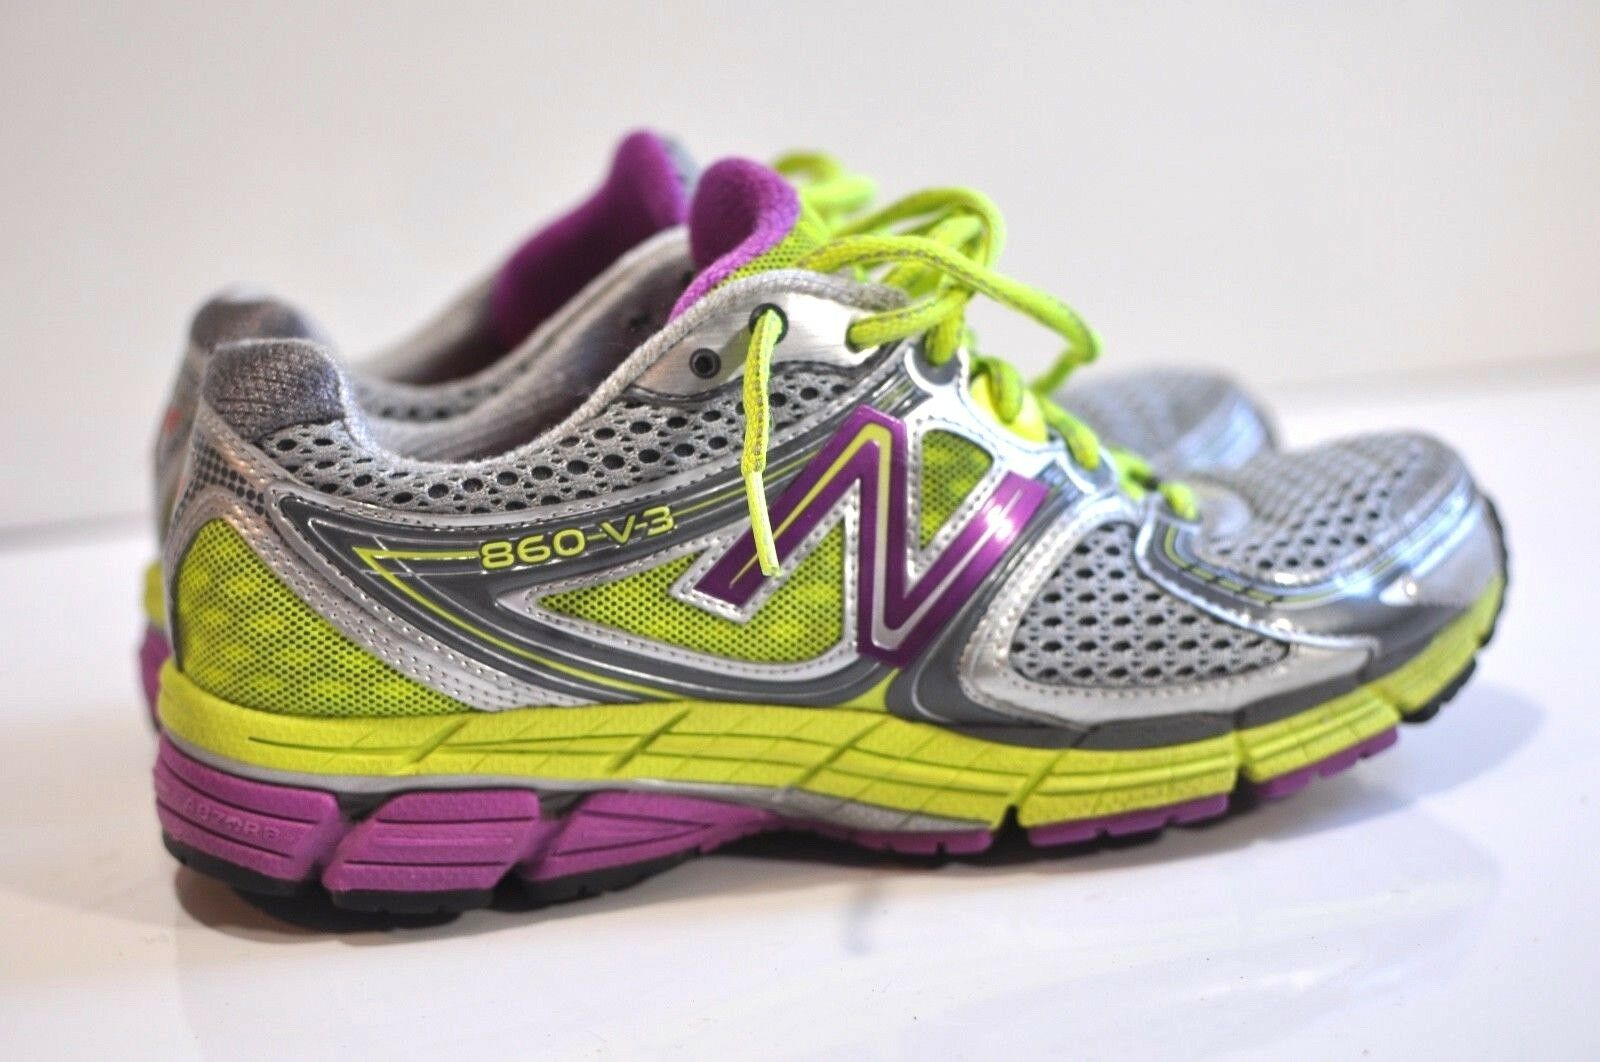 New Balance 860 V-3 femmes running chaussures Taille 10 10 10 made in USA 47ecb5